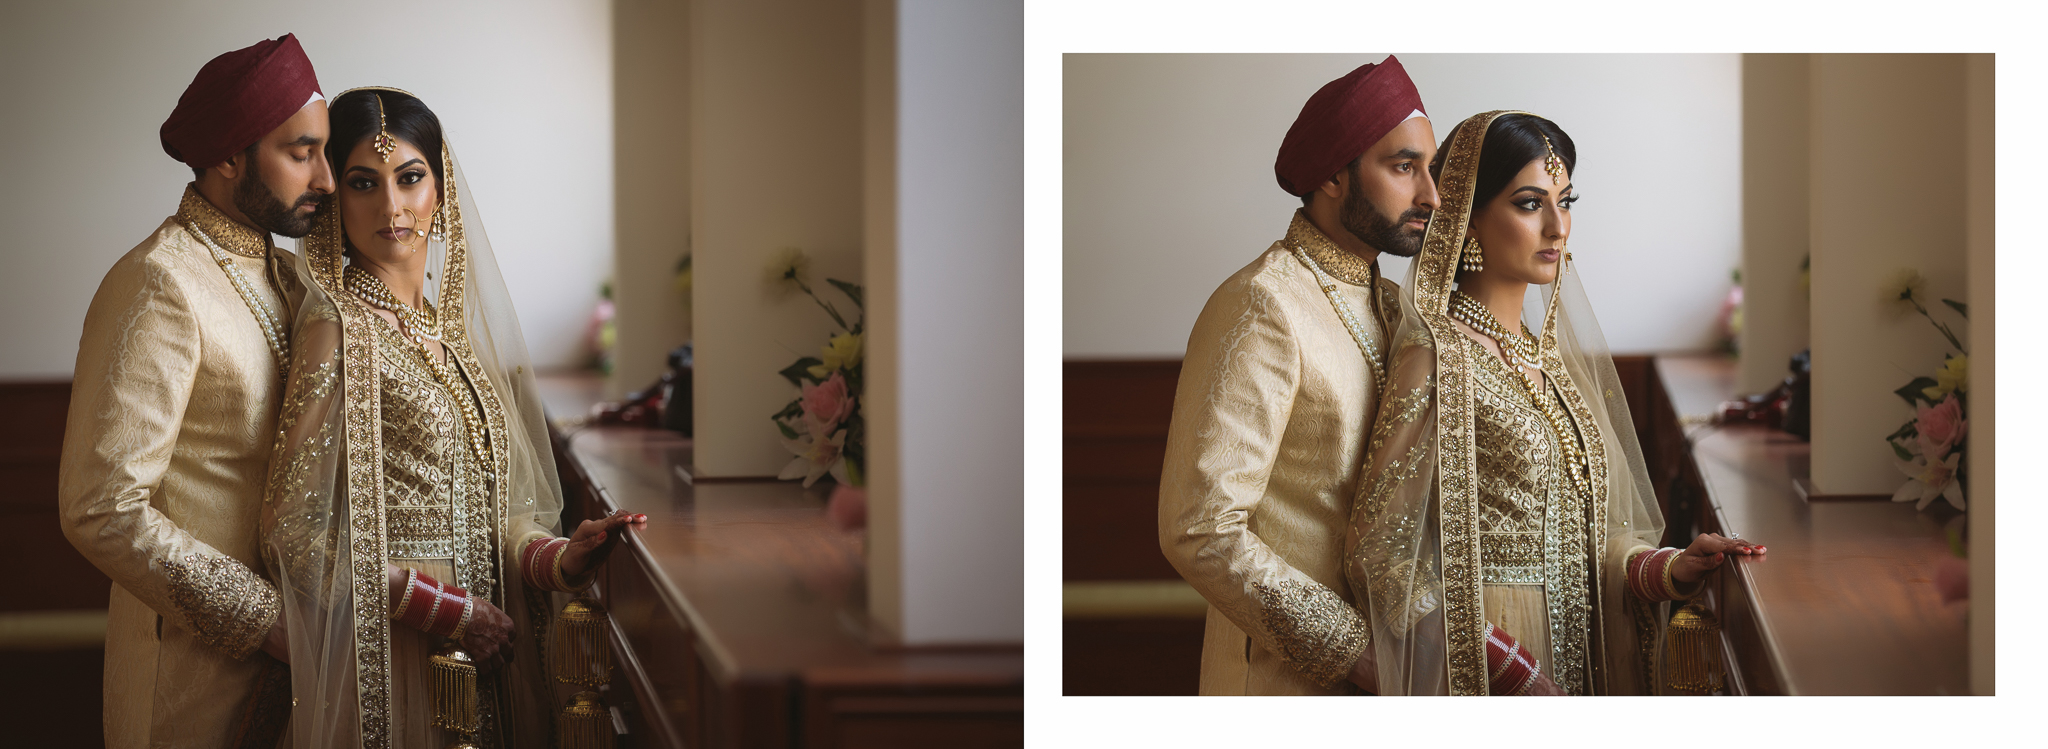 Zohaib Ali_Sikh Wedding_ London 037-038.jpg